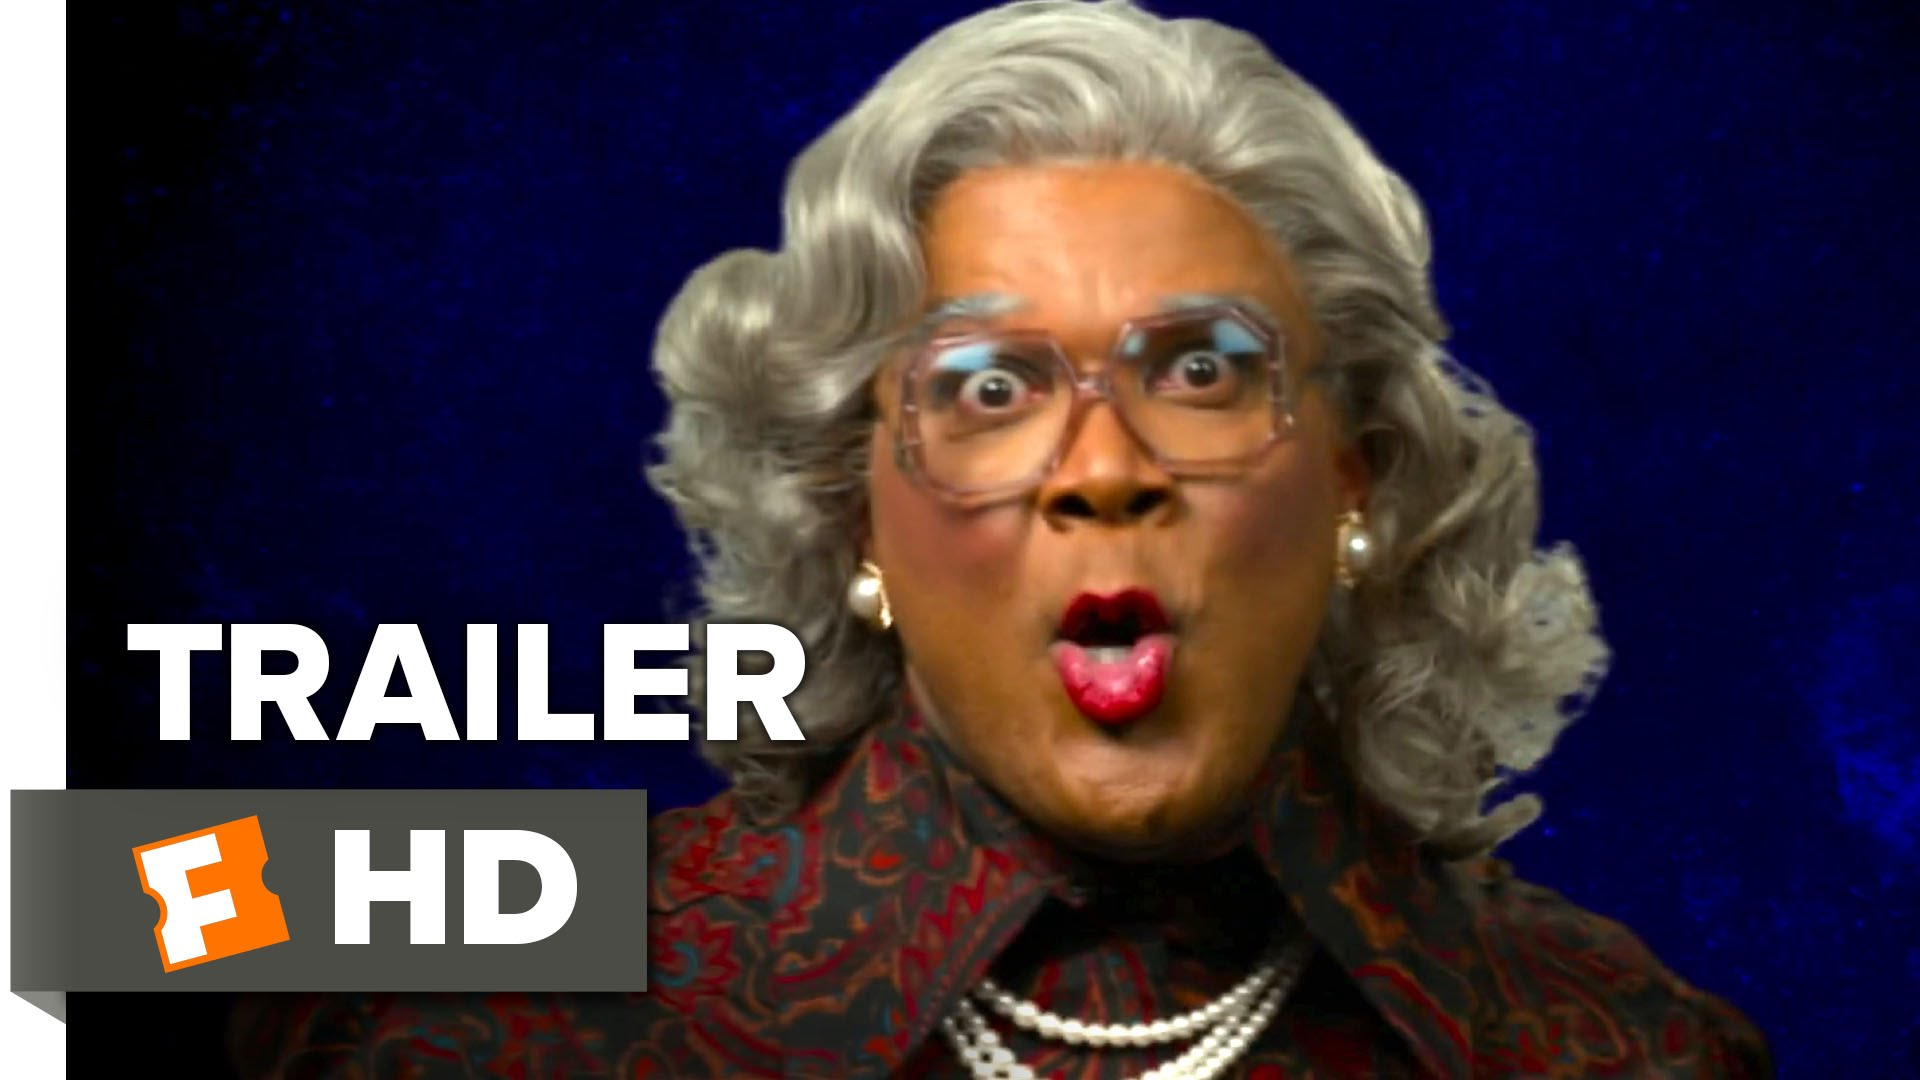 Watch The Official Teaser To Tyler Perry's